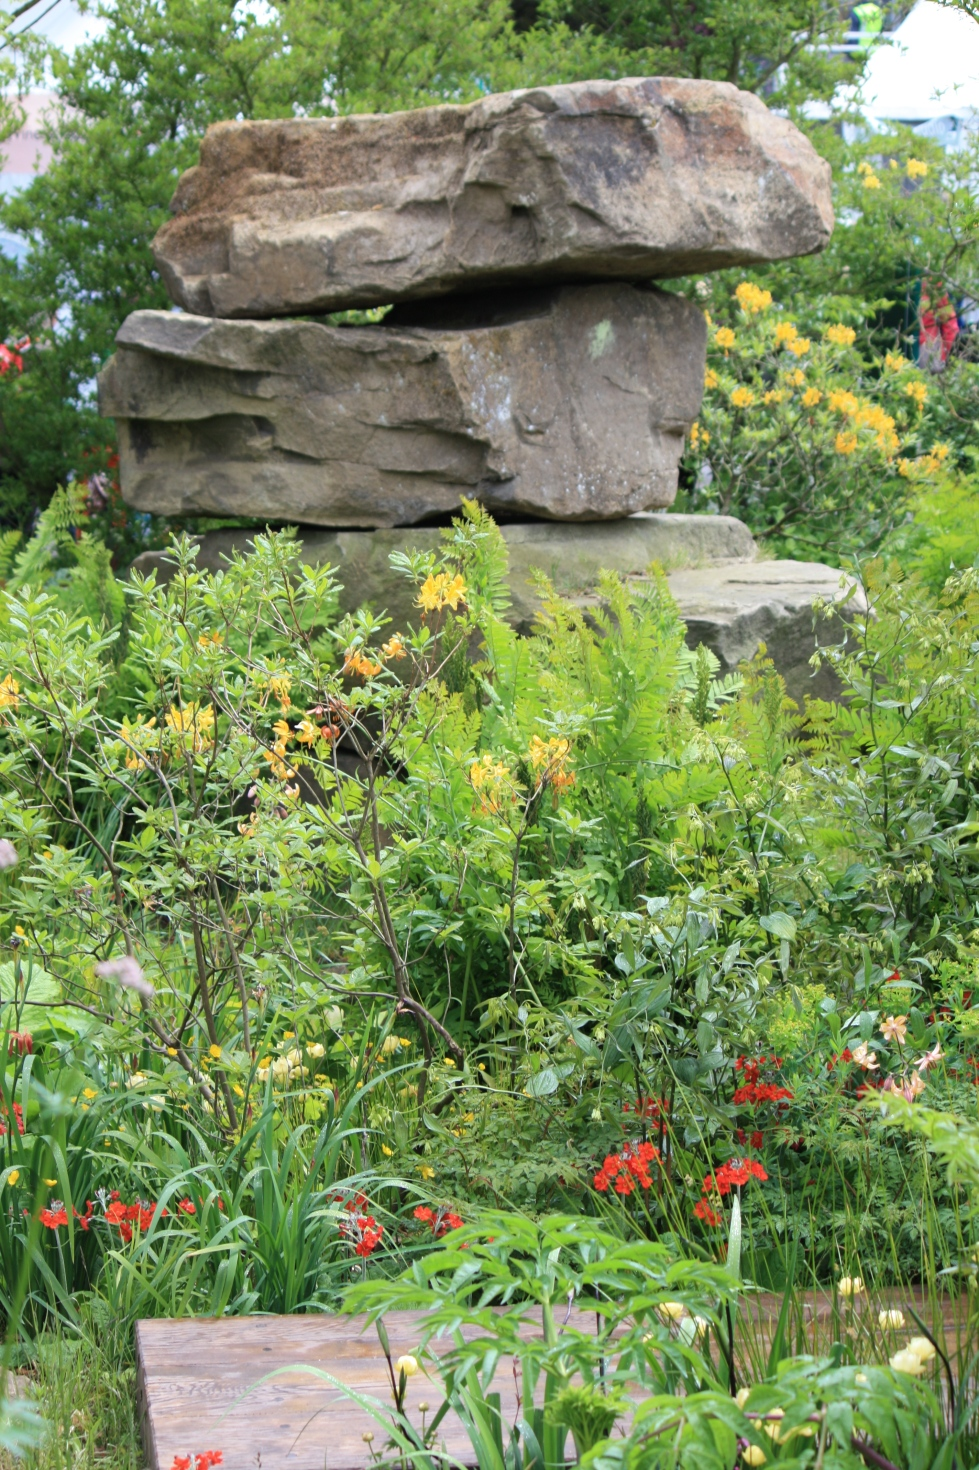 Rocks surrounded by the fragrant flowers of Rhododendron luteum